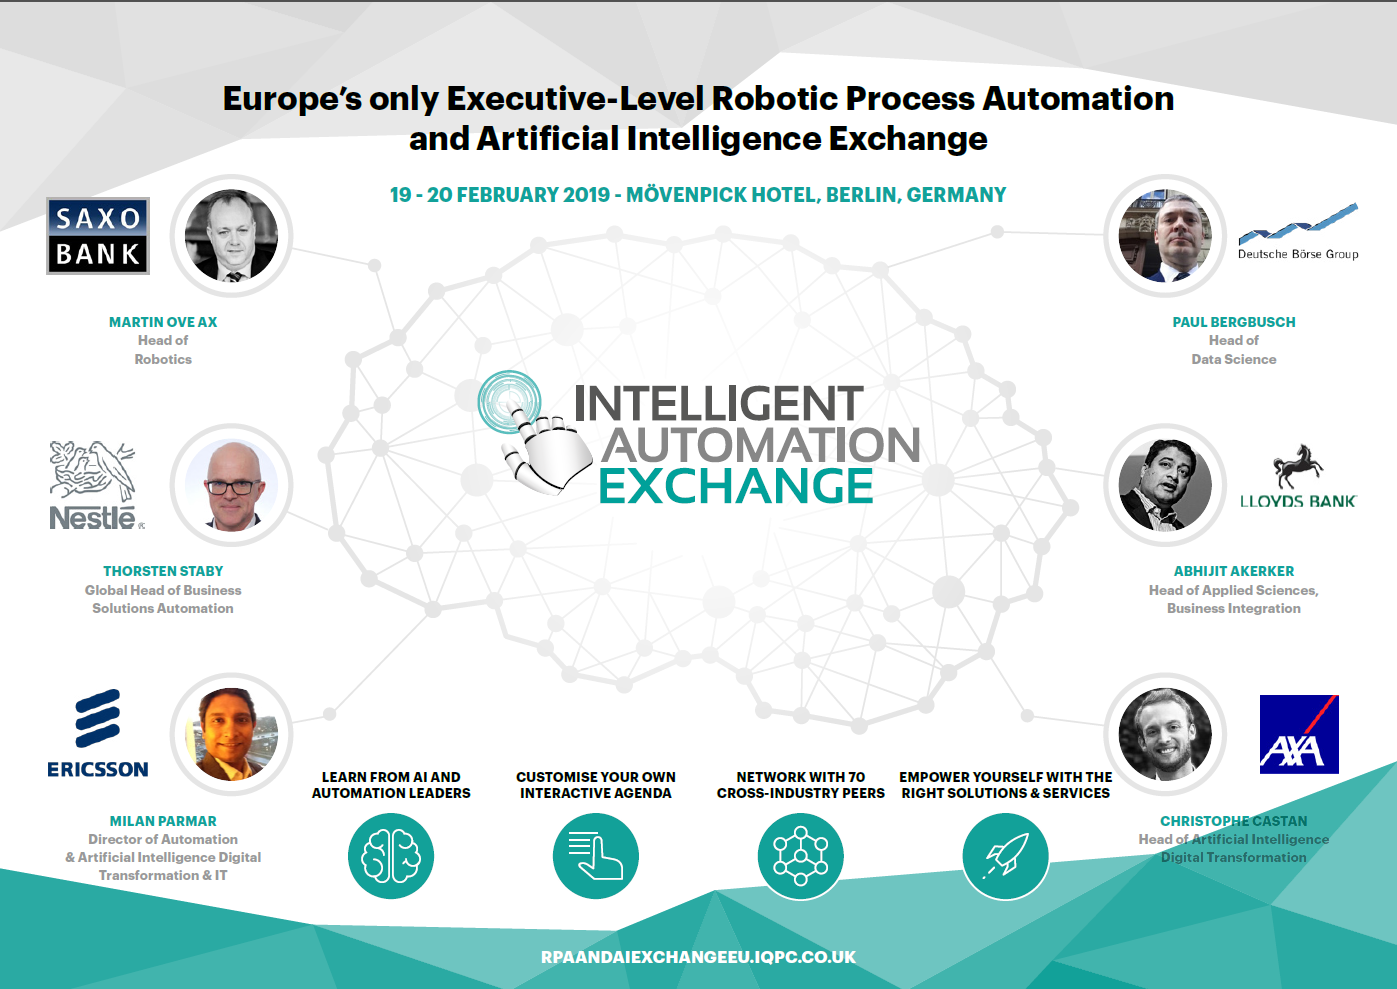 Download the 2019 Intelligent Automation Exchange Agenda